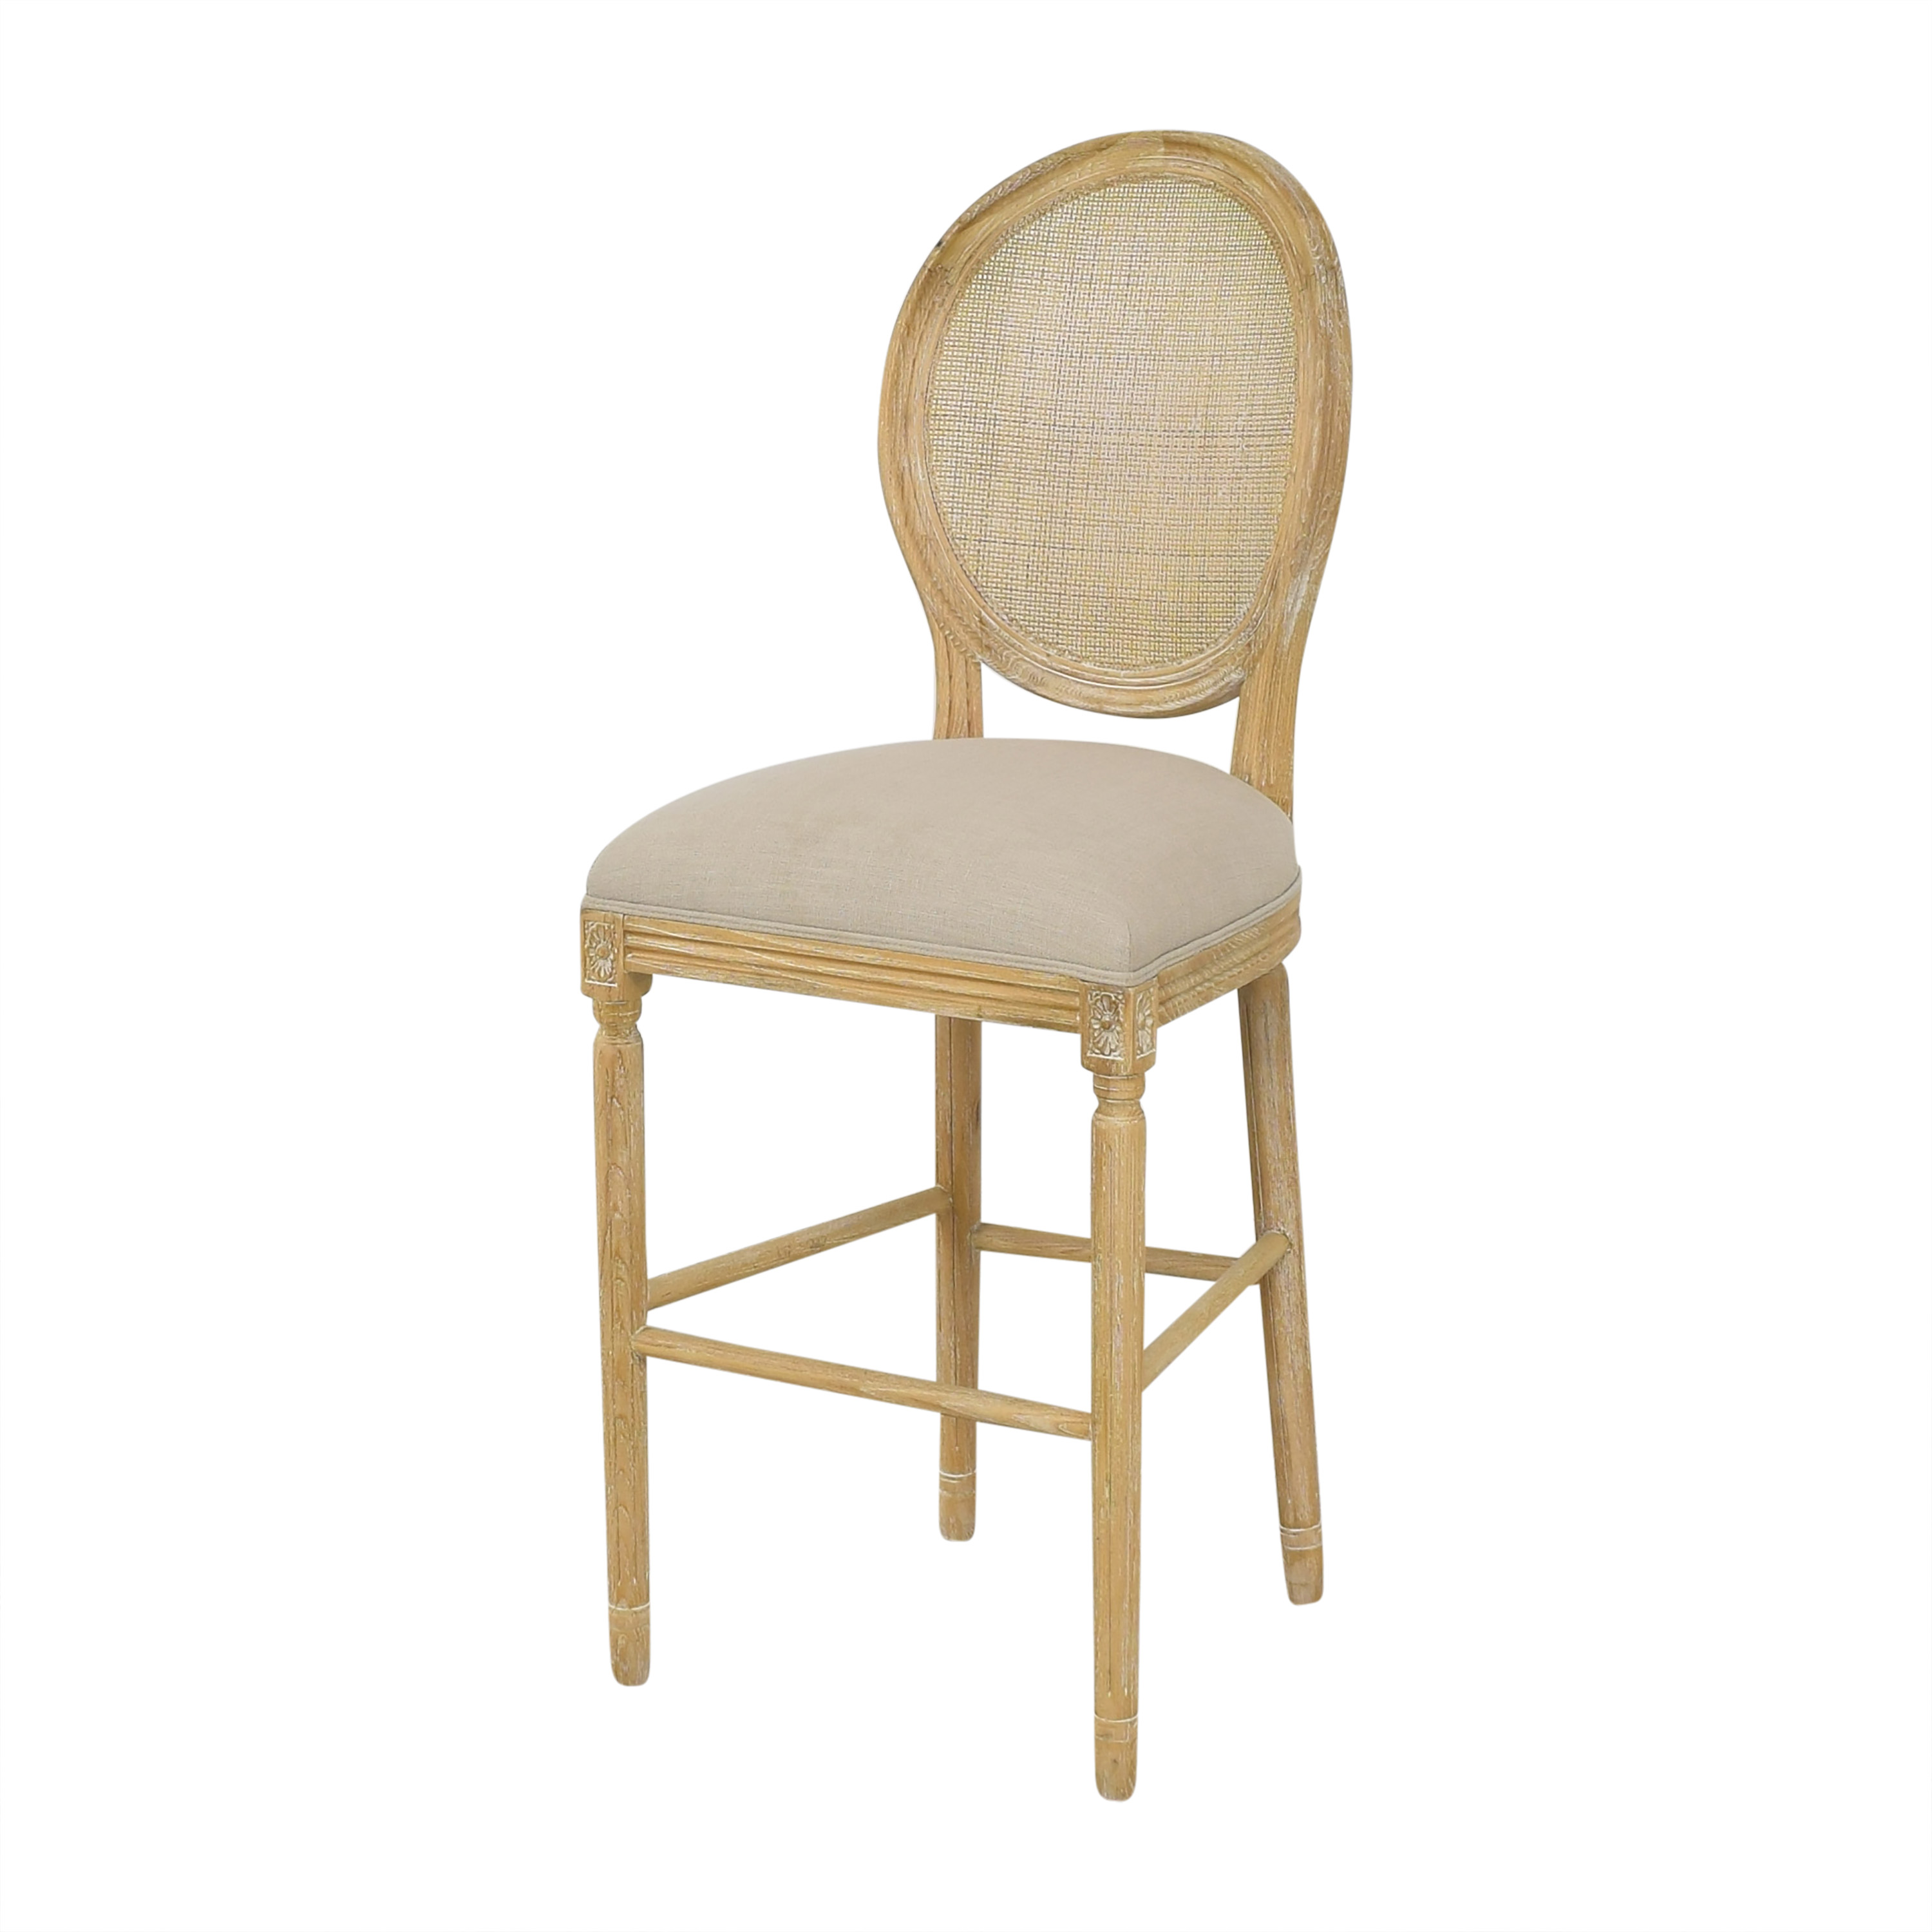 shop Wisteria Wisteria Upholstered Bar Stools online